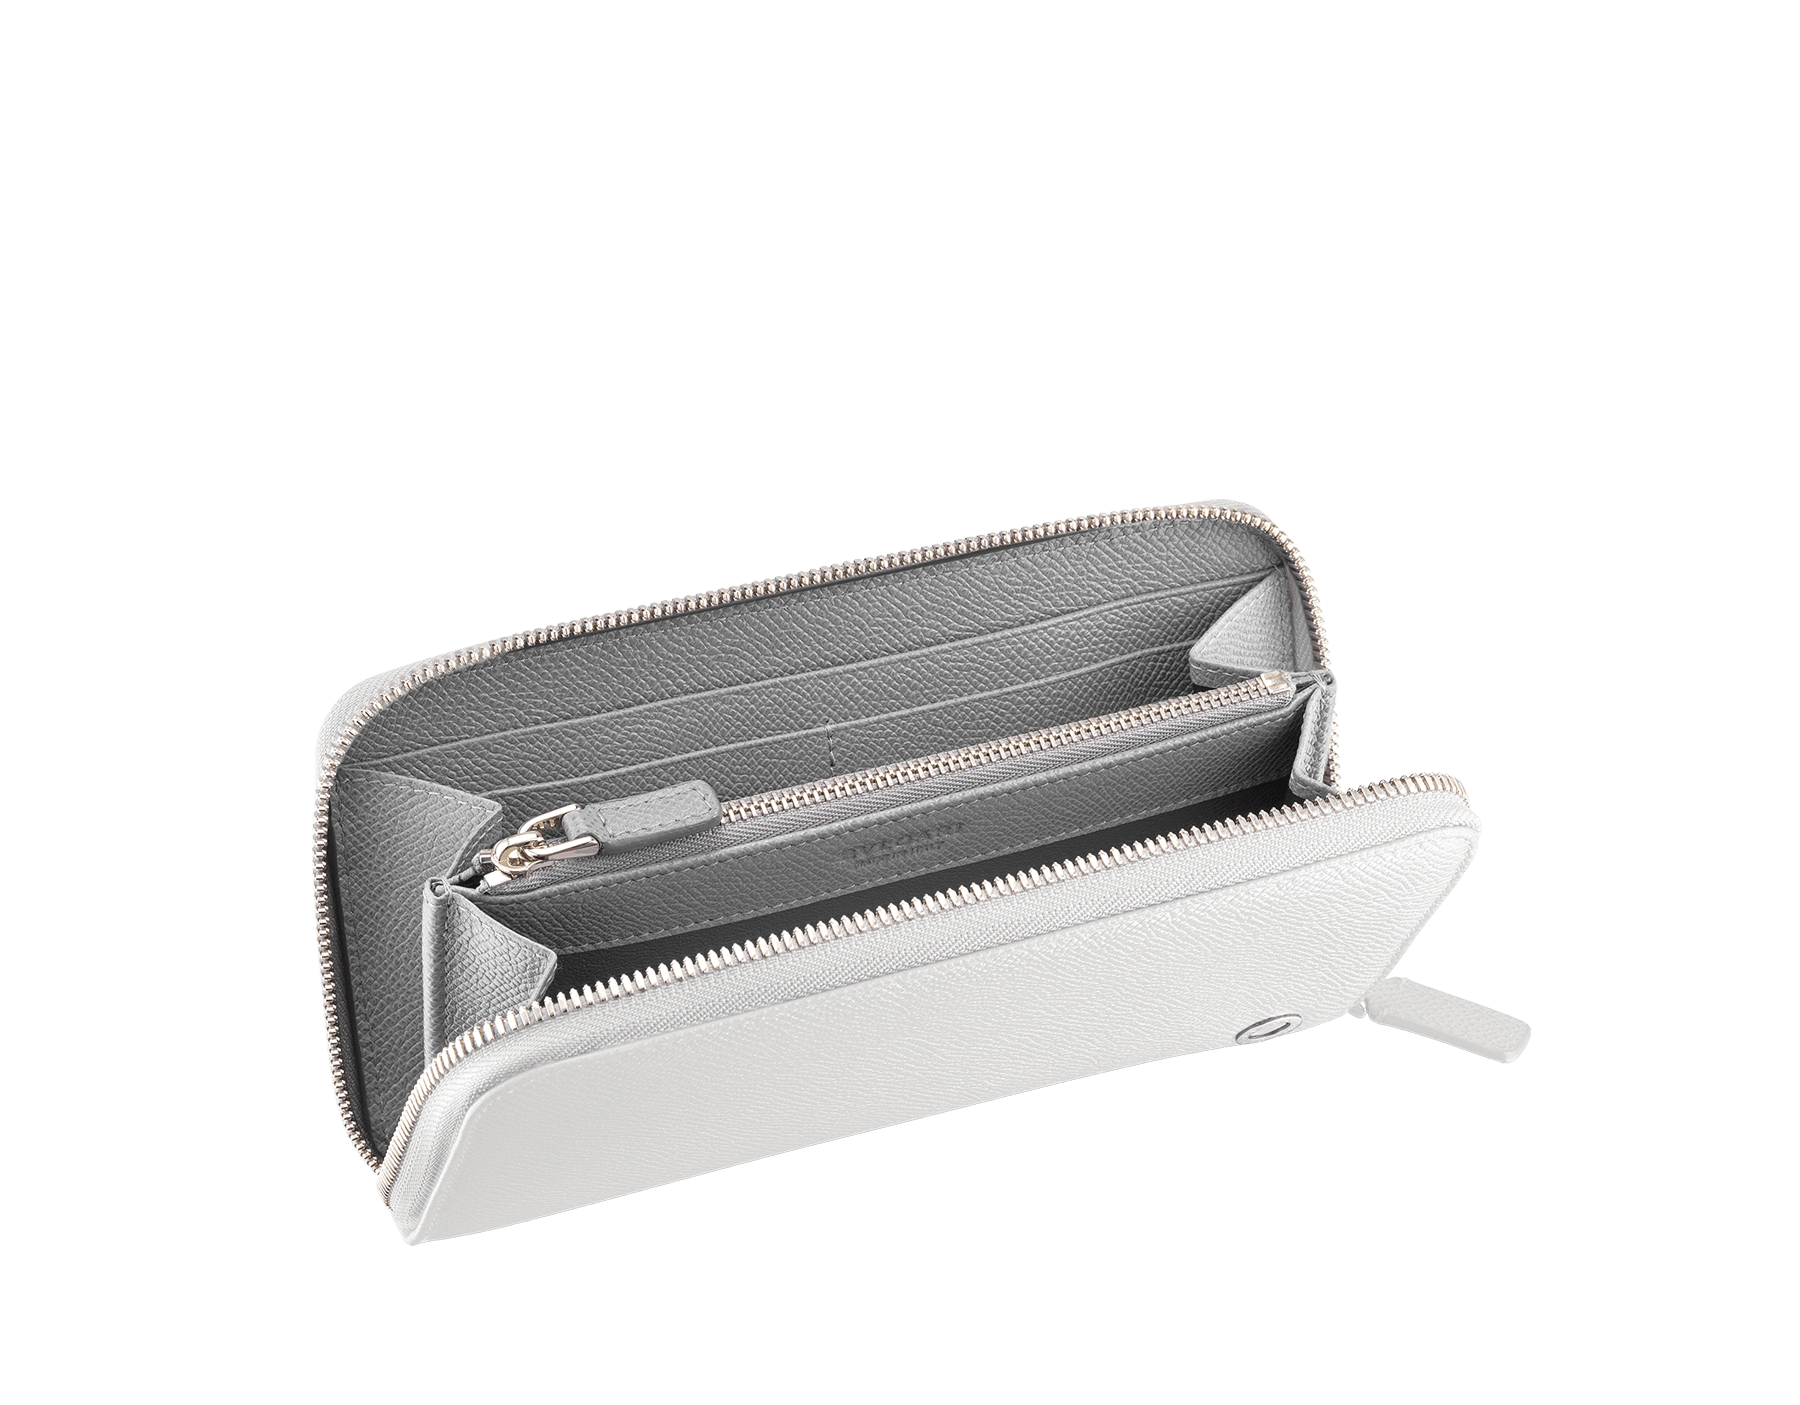 BVLGARI BVLGARI man zipped wallet in white agate and pluto stone grain calf leather and iron stone nappa lining. Iconic logo décor in palladium plated brass. 288255 image 2